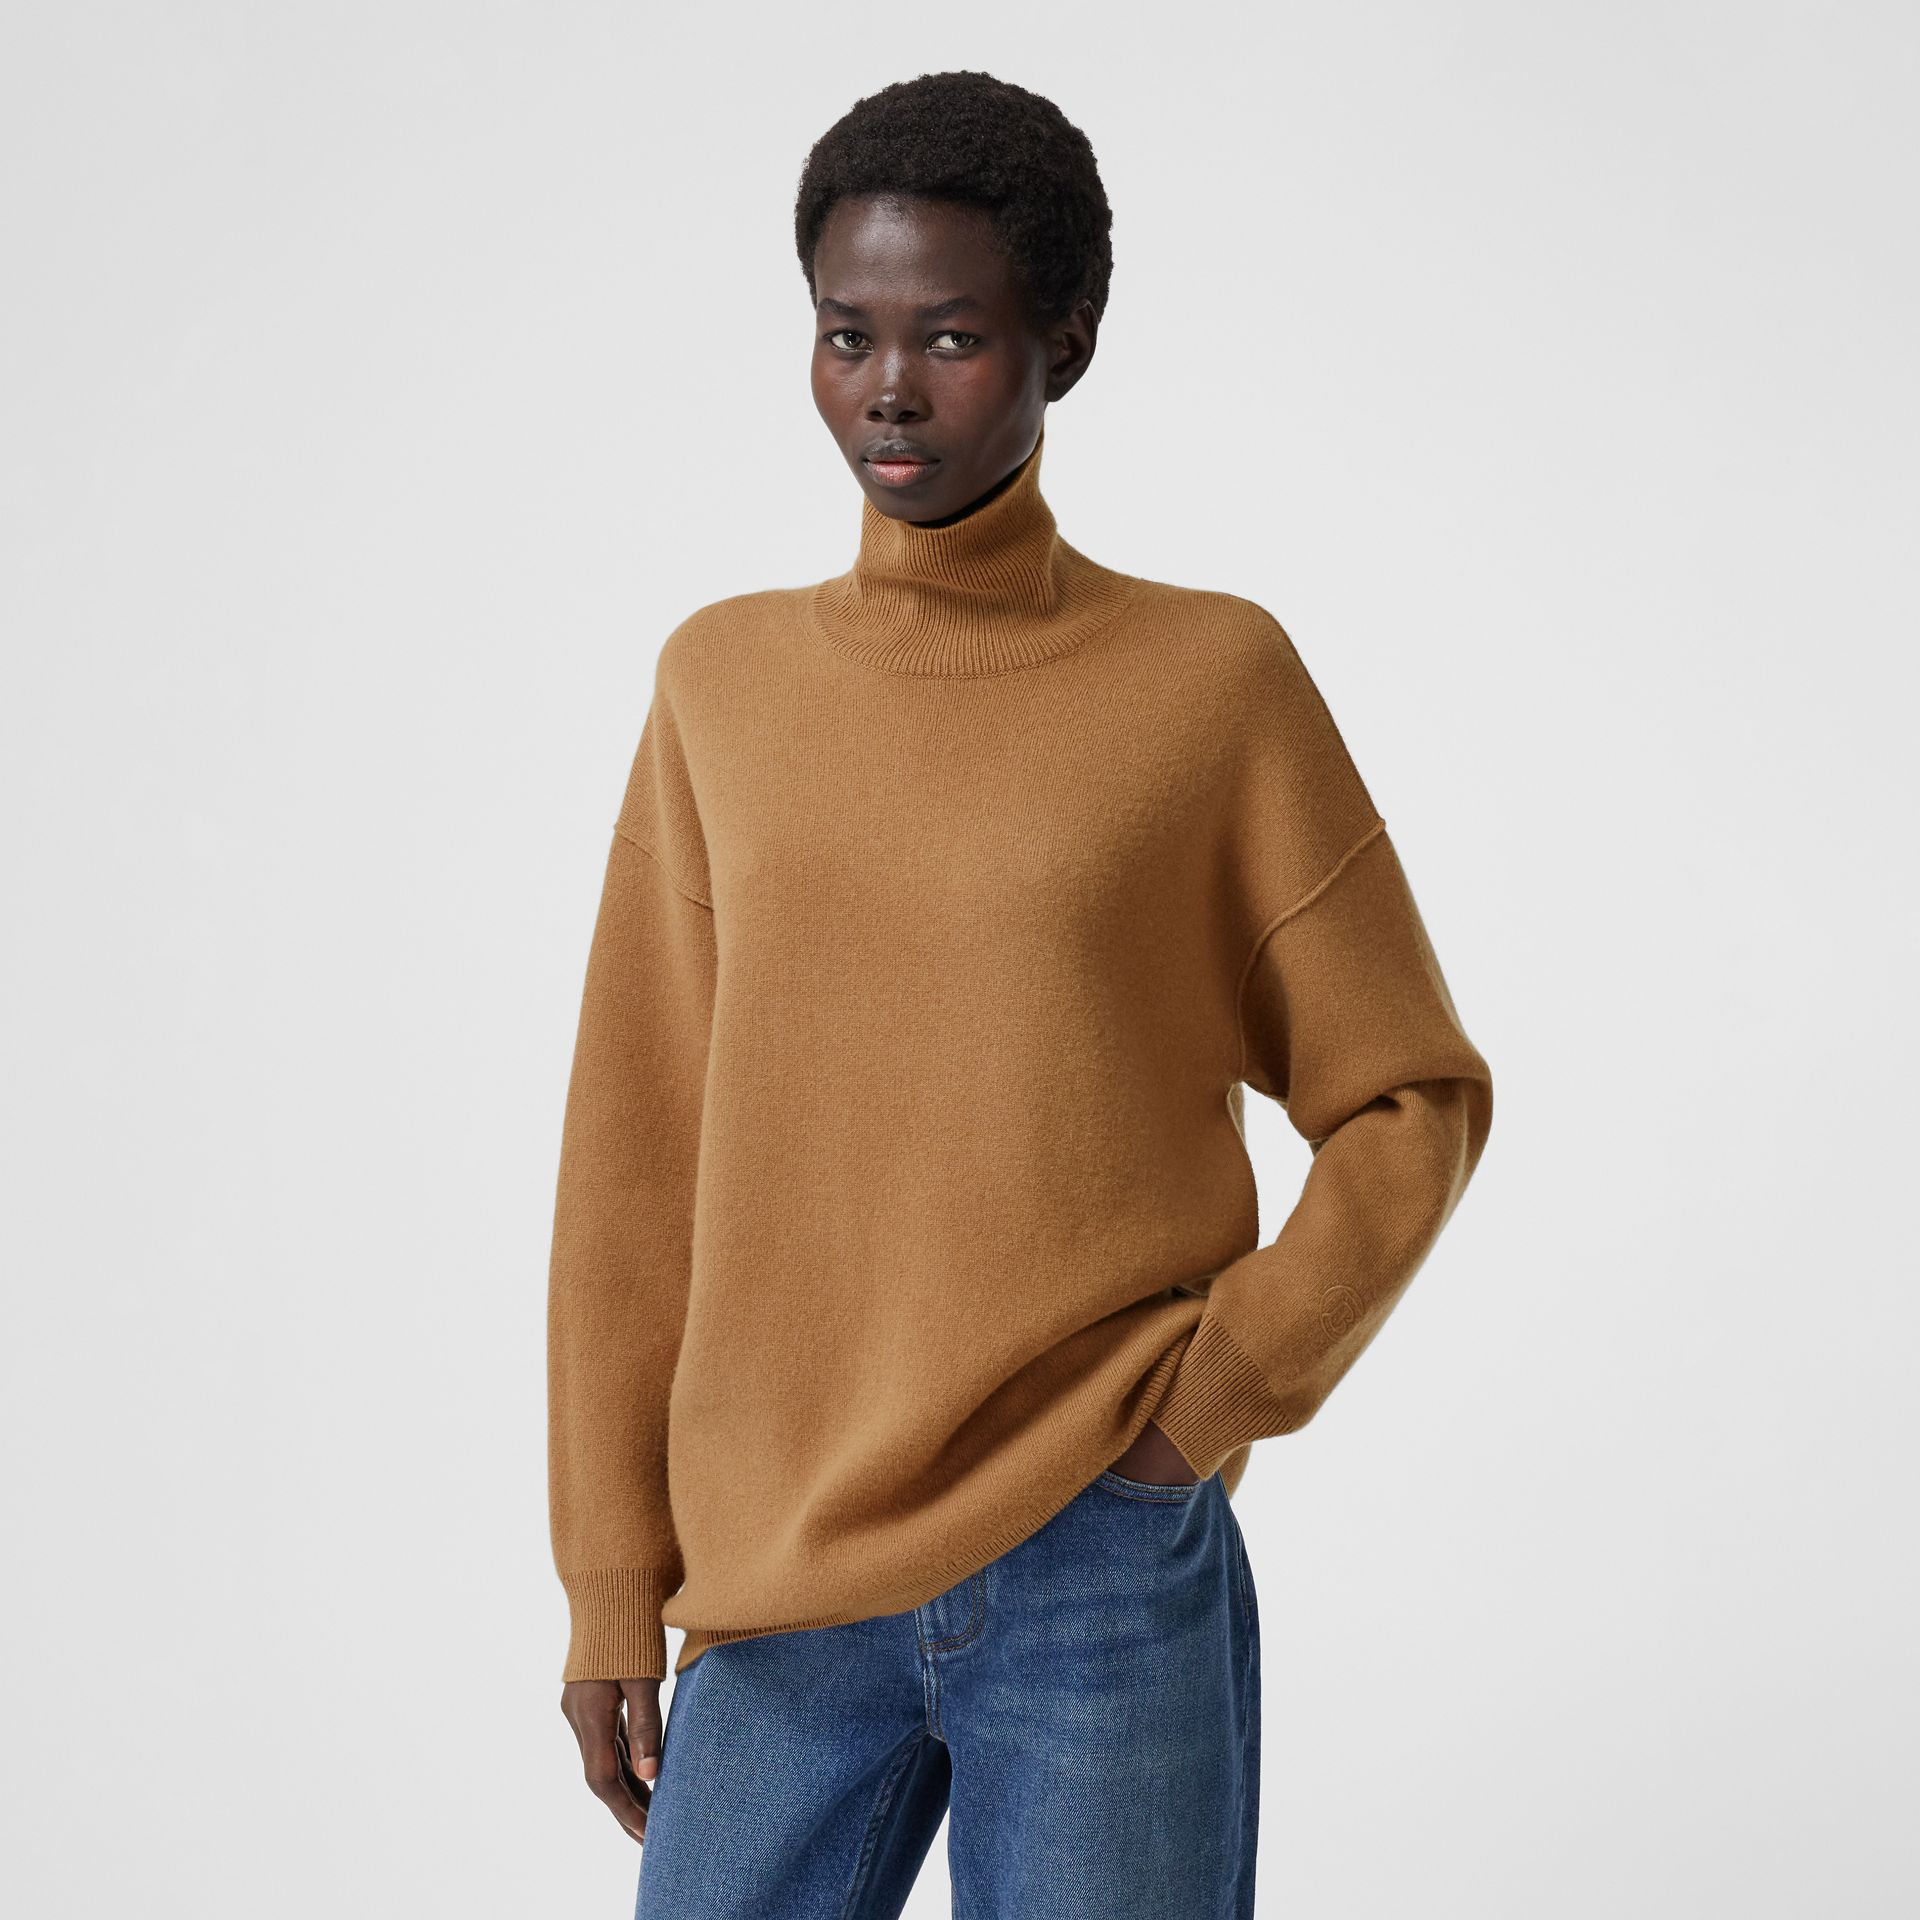 Monogram Motif Cashmere Blend Funnel Neck Sweater in Camel - Women | Burberry - gallery image 5